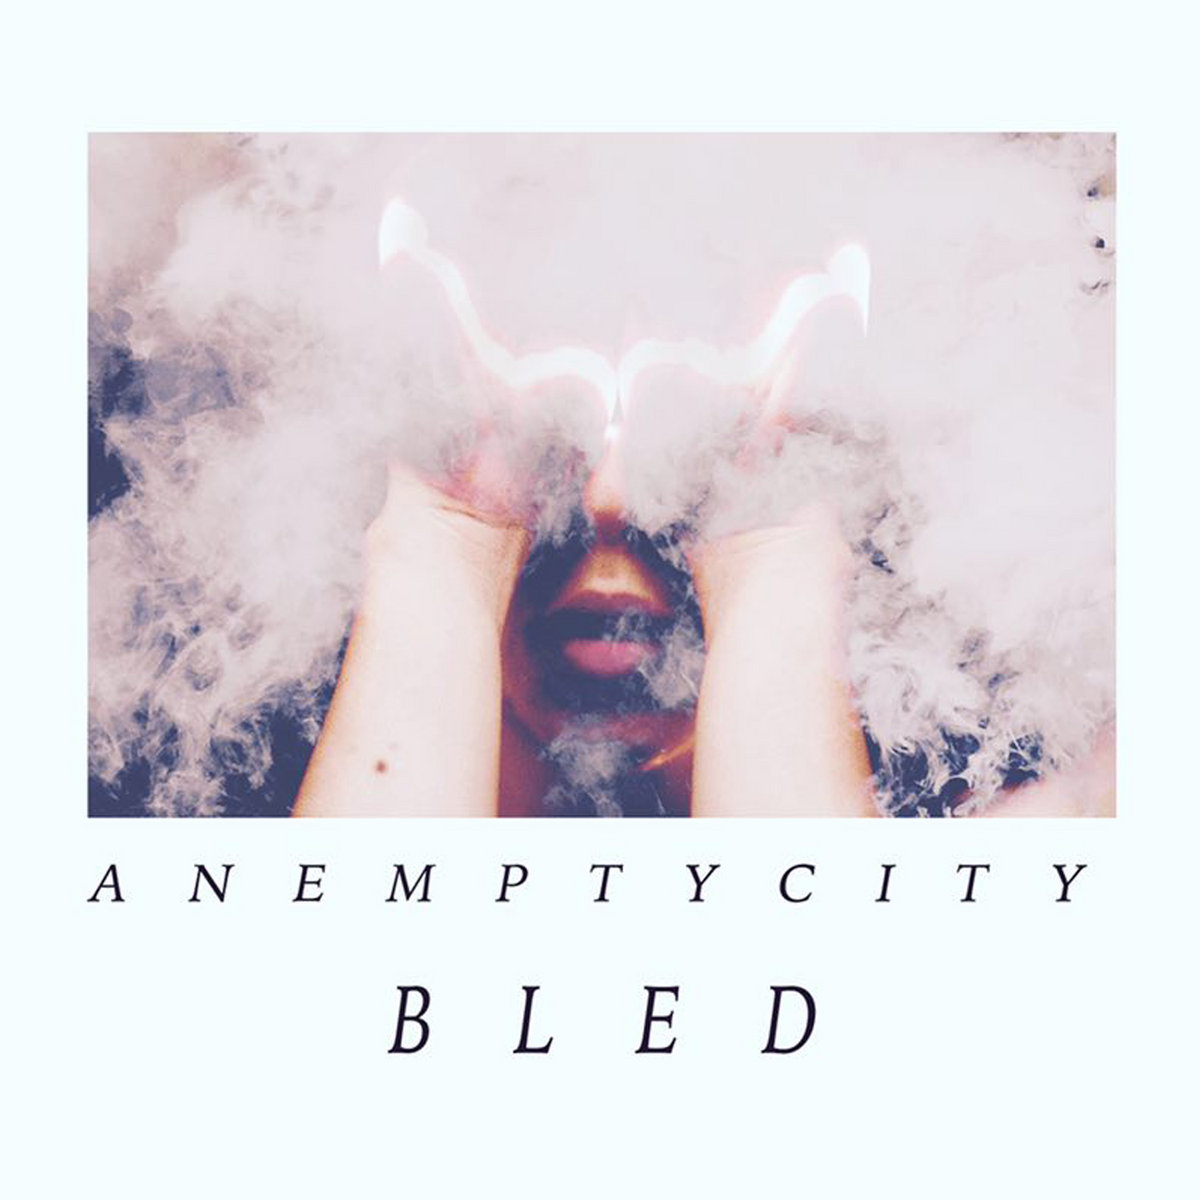 An Empty City - BLED (2017)